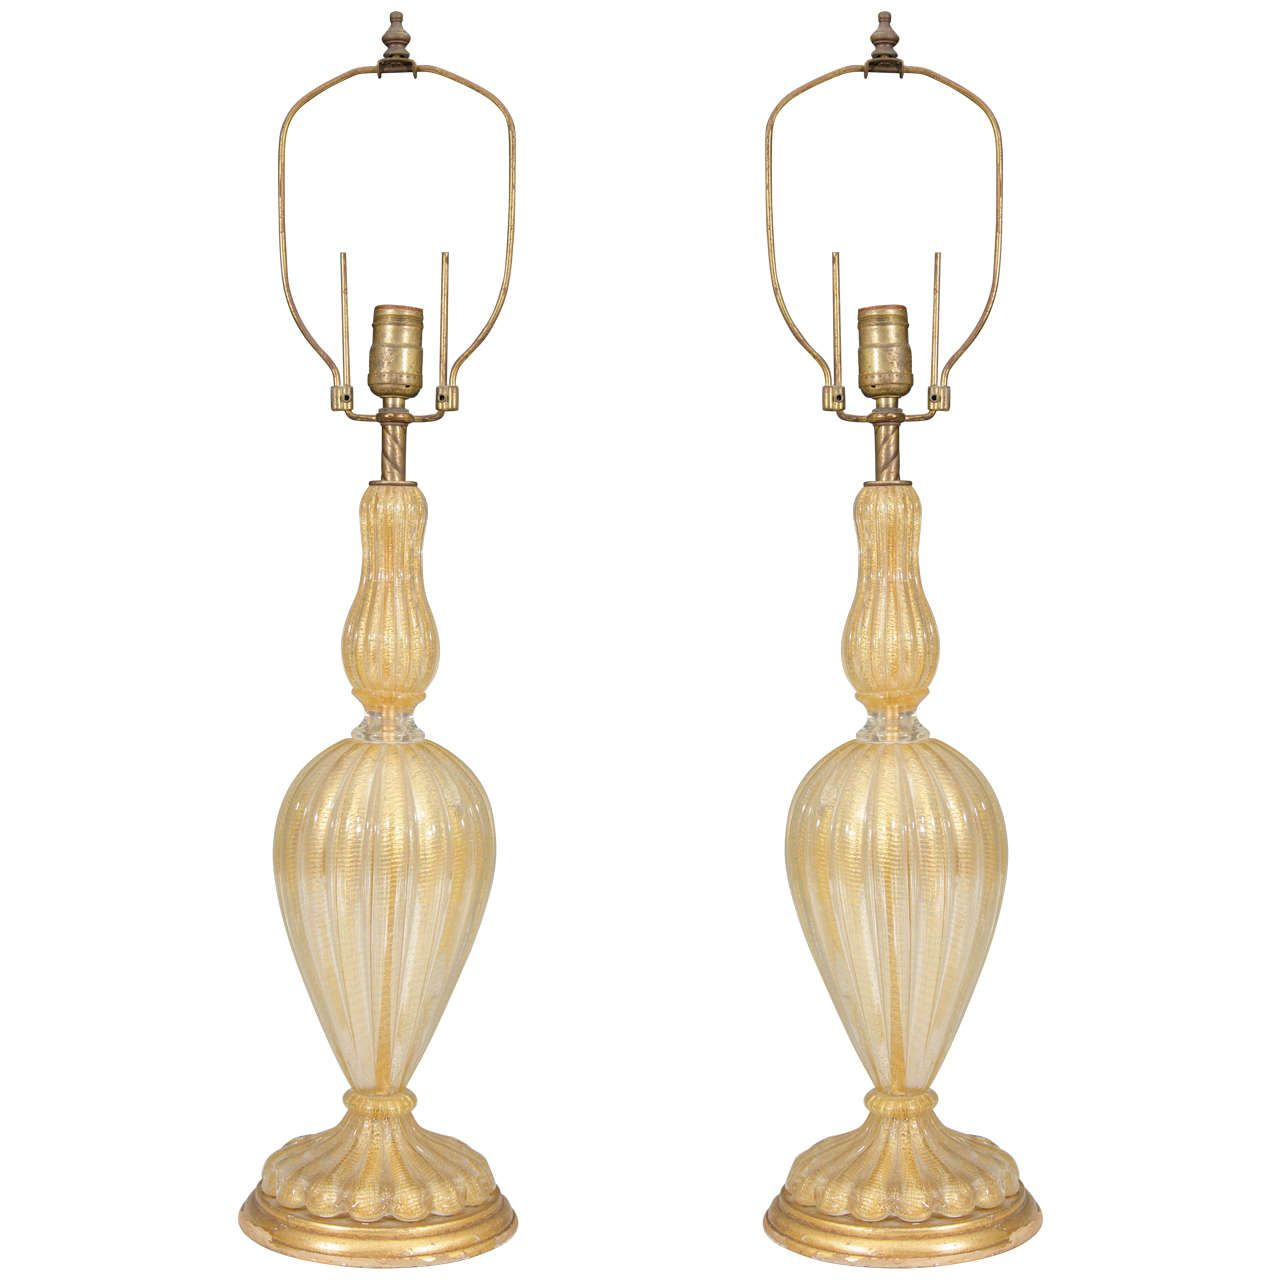 Midcentury Pair Of Gold Colored Murano Glass Barovier U0026 Toso Table Lamps